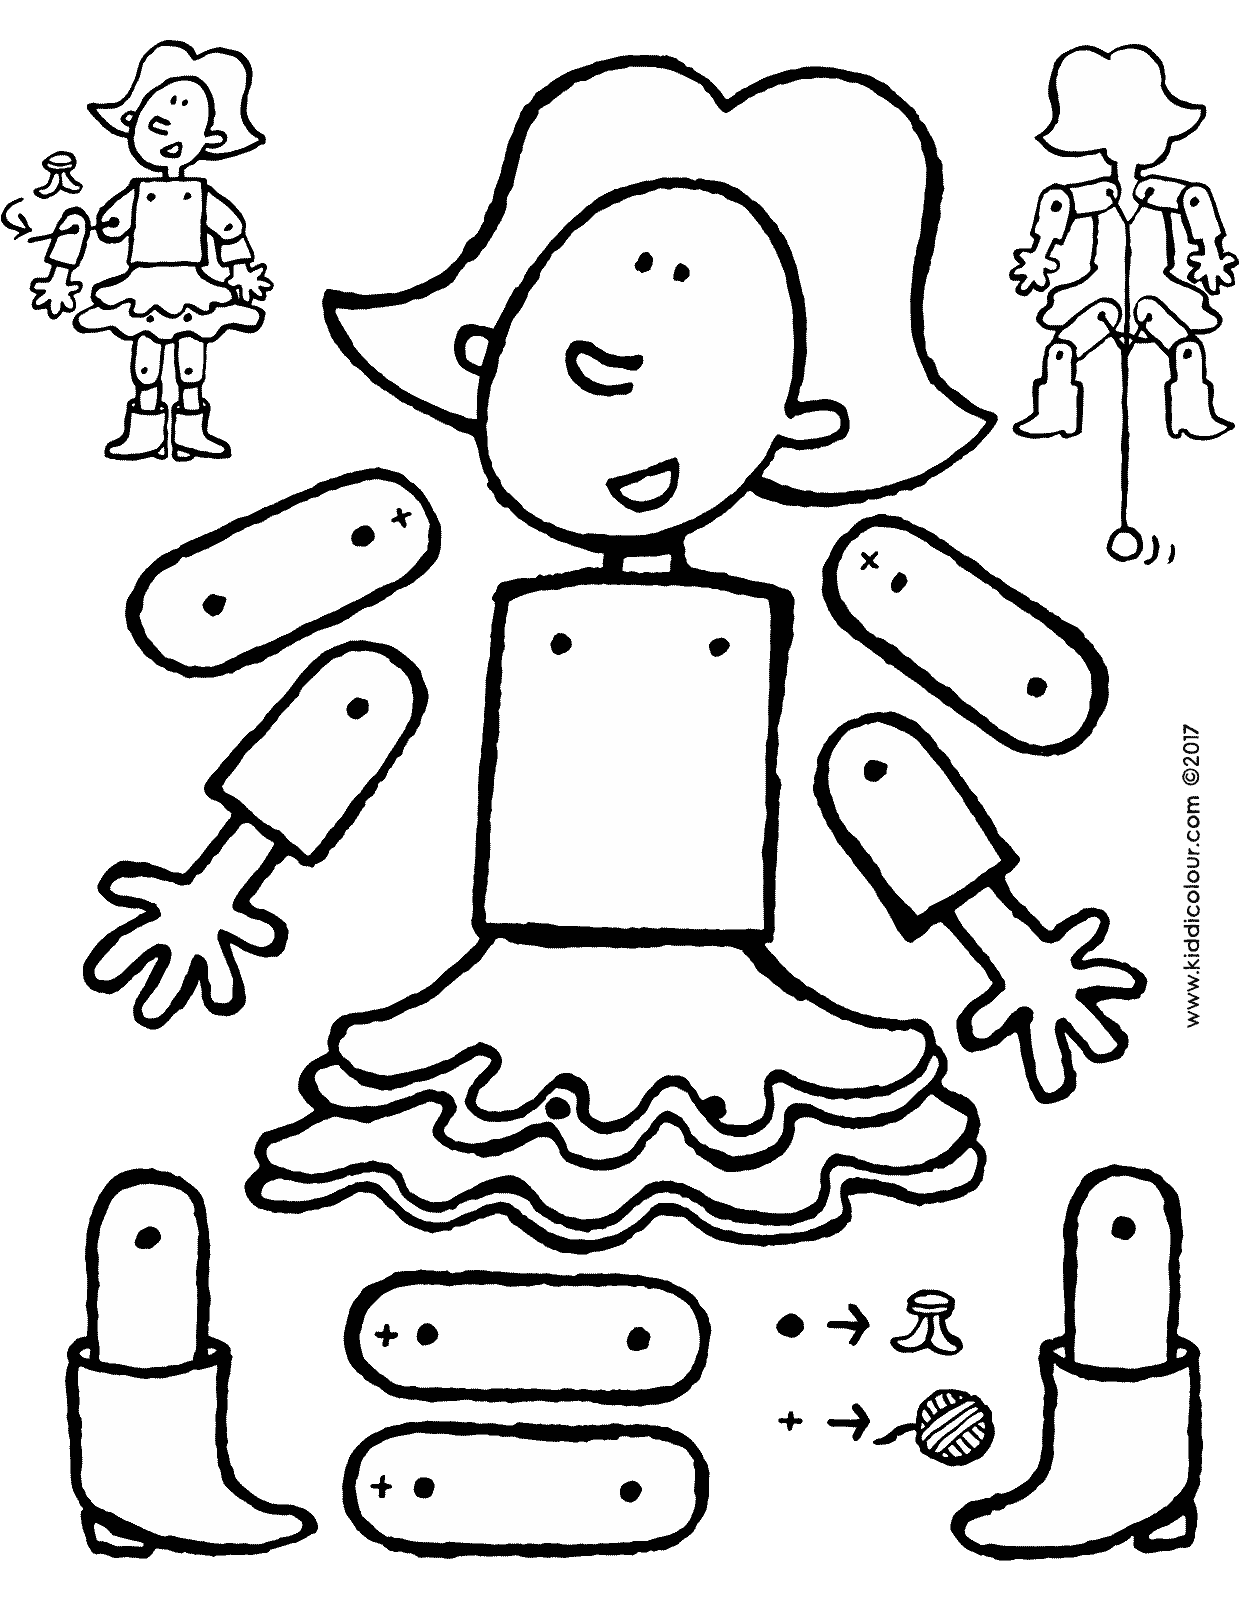 Pins drawing doll. Emma as a jumping